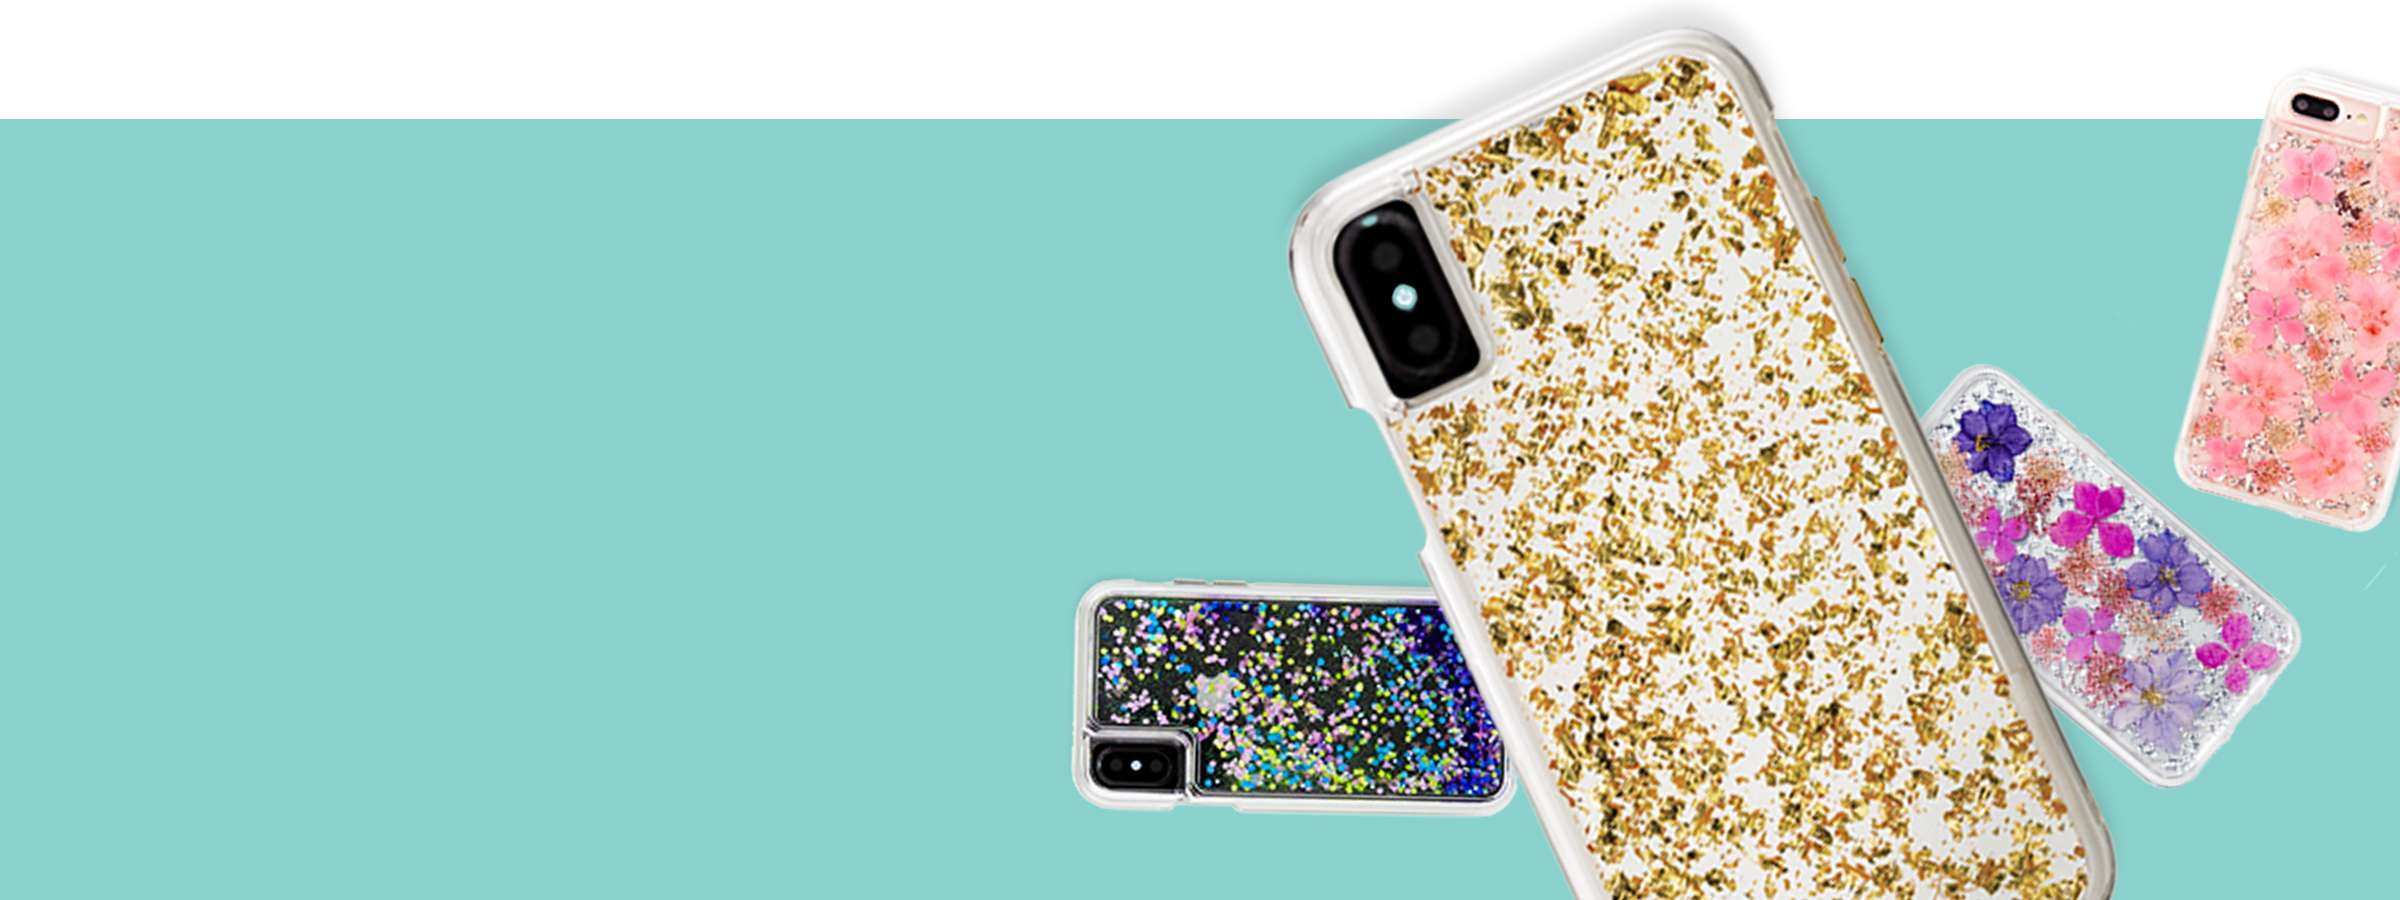 Virgin mobile cell phones target cell phone cases biocorpaavc Image collections